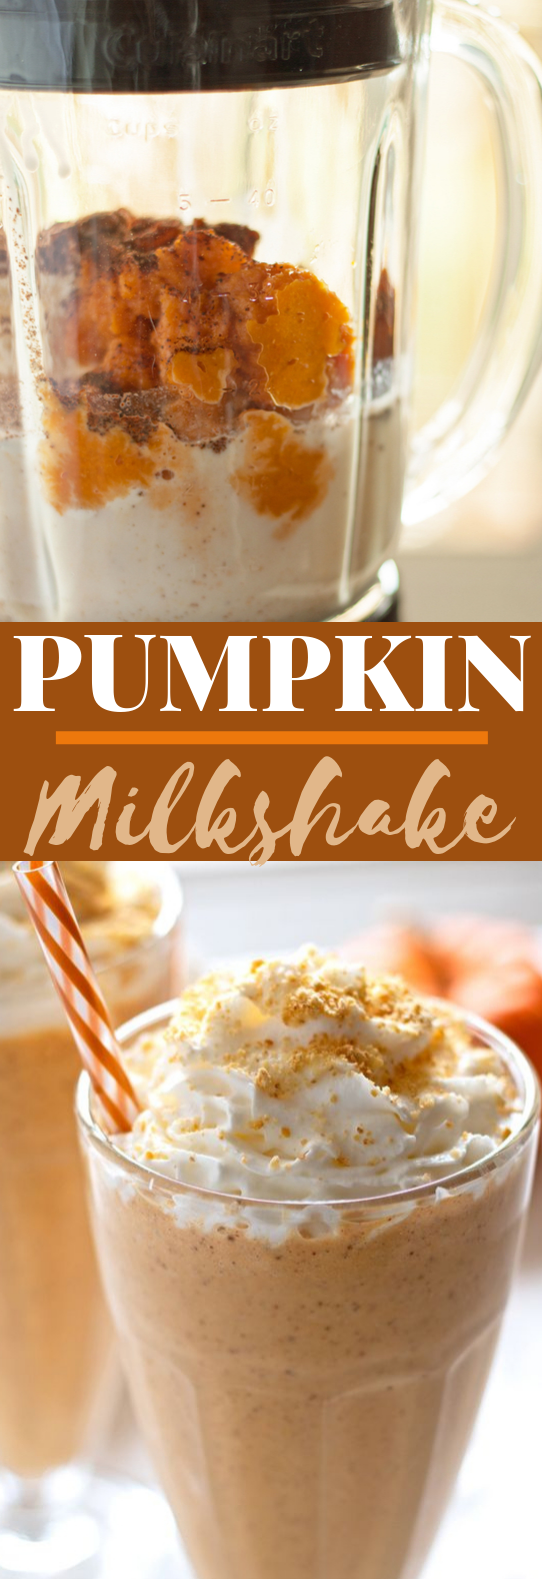 Pumpkin Pie Milkshake #drinks #milkshake